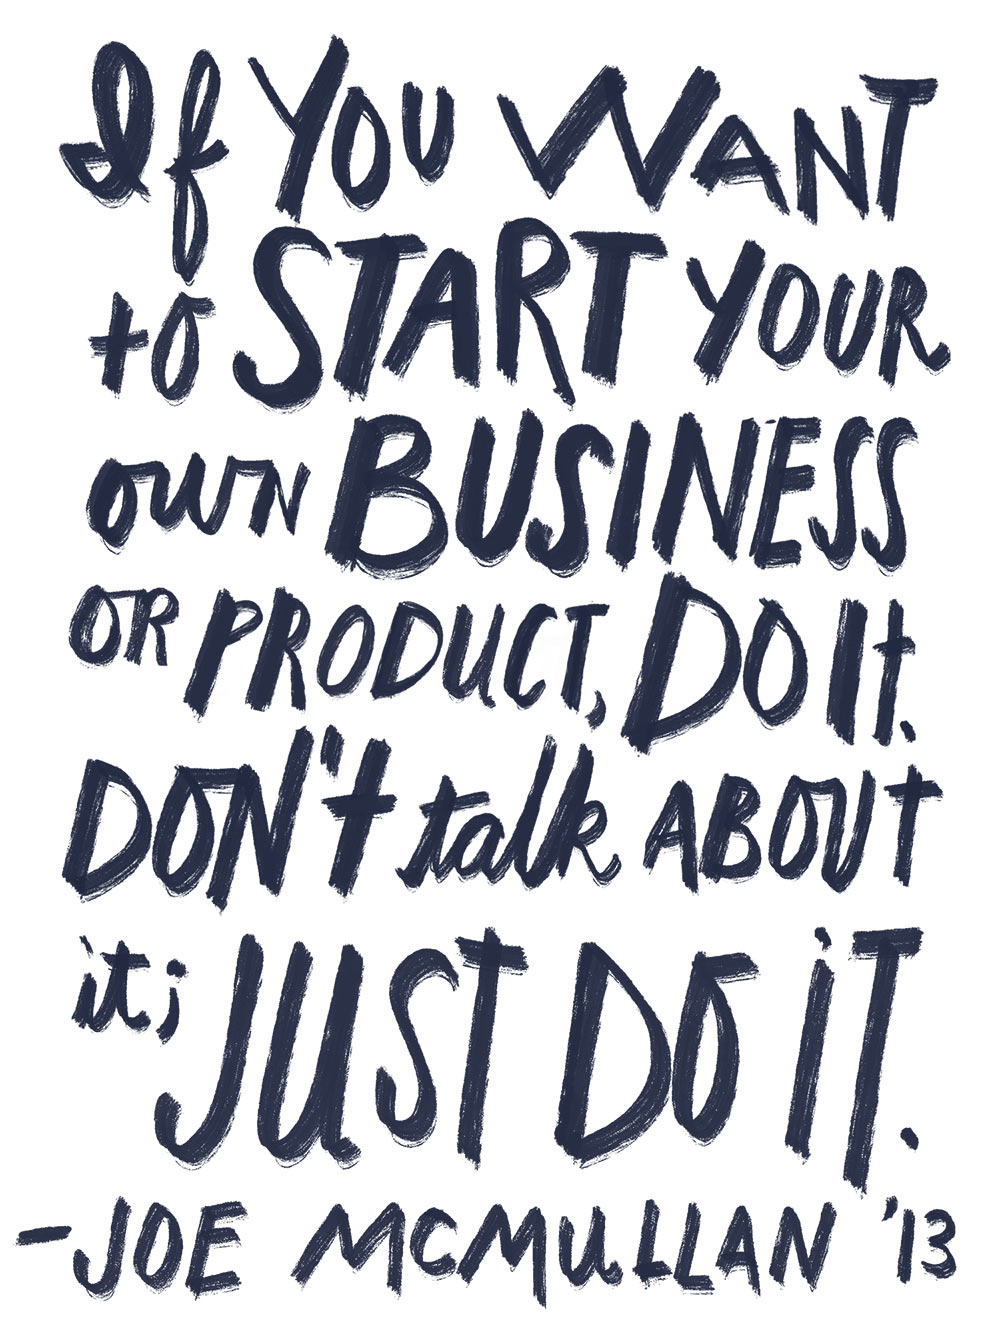 If you want to start your own business or product, do it; Don't talk about it, just do it.